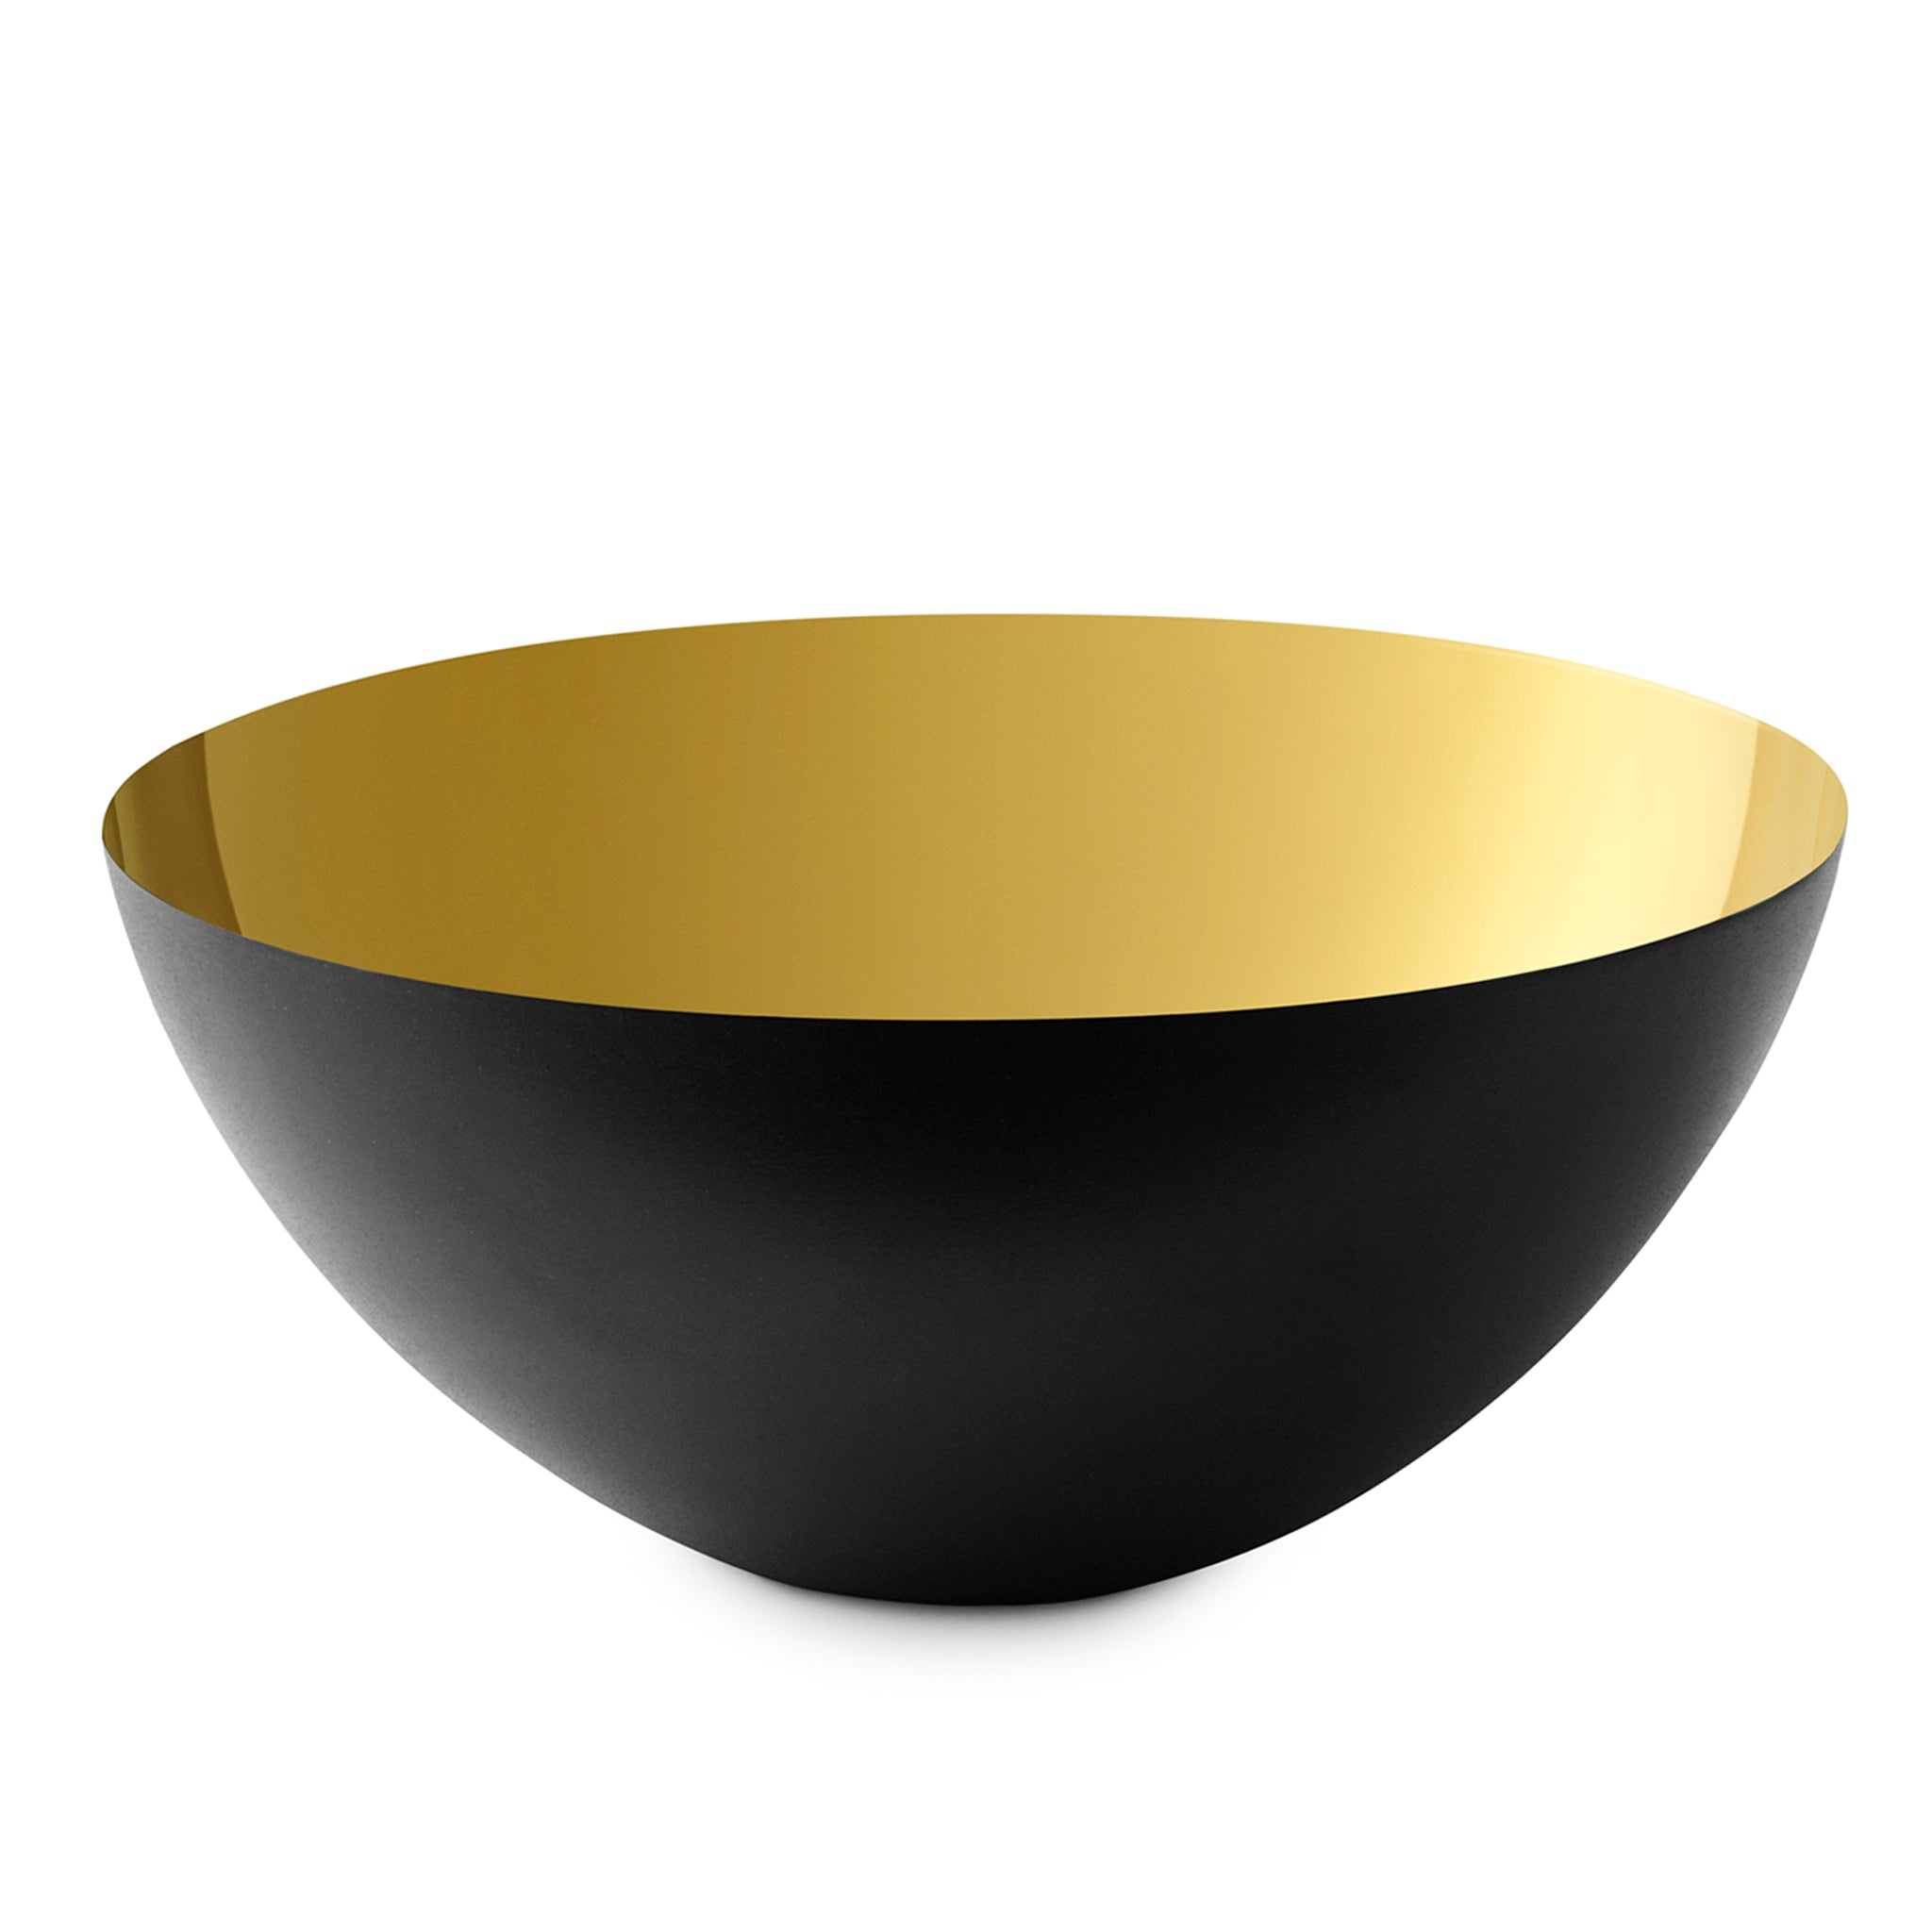 Metallic Medium Krenit Bowl Image